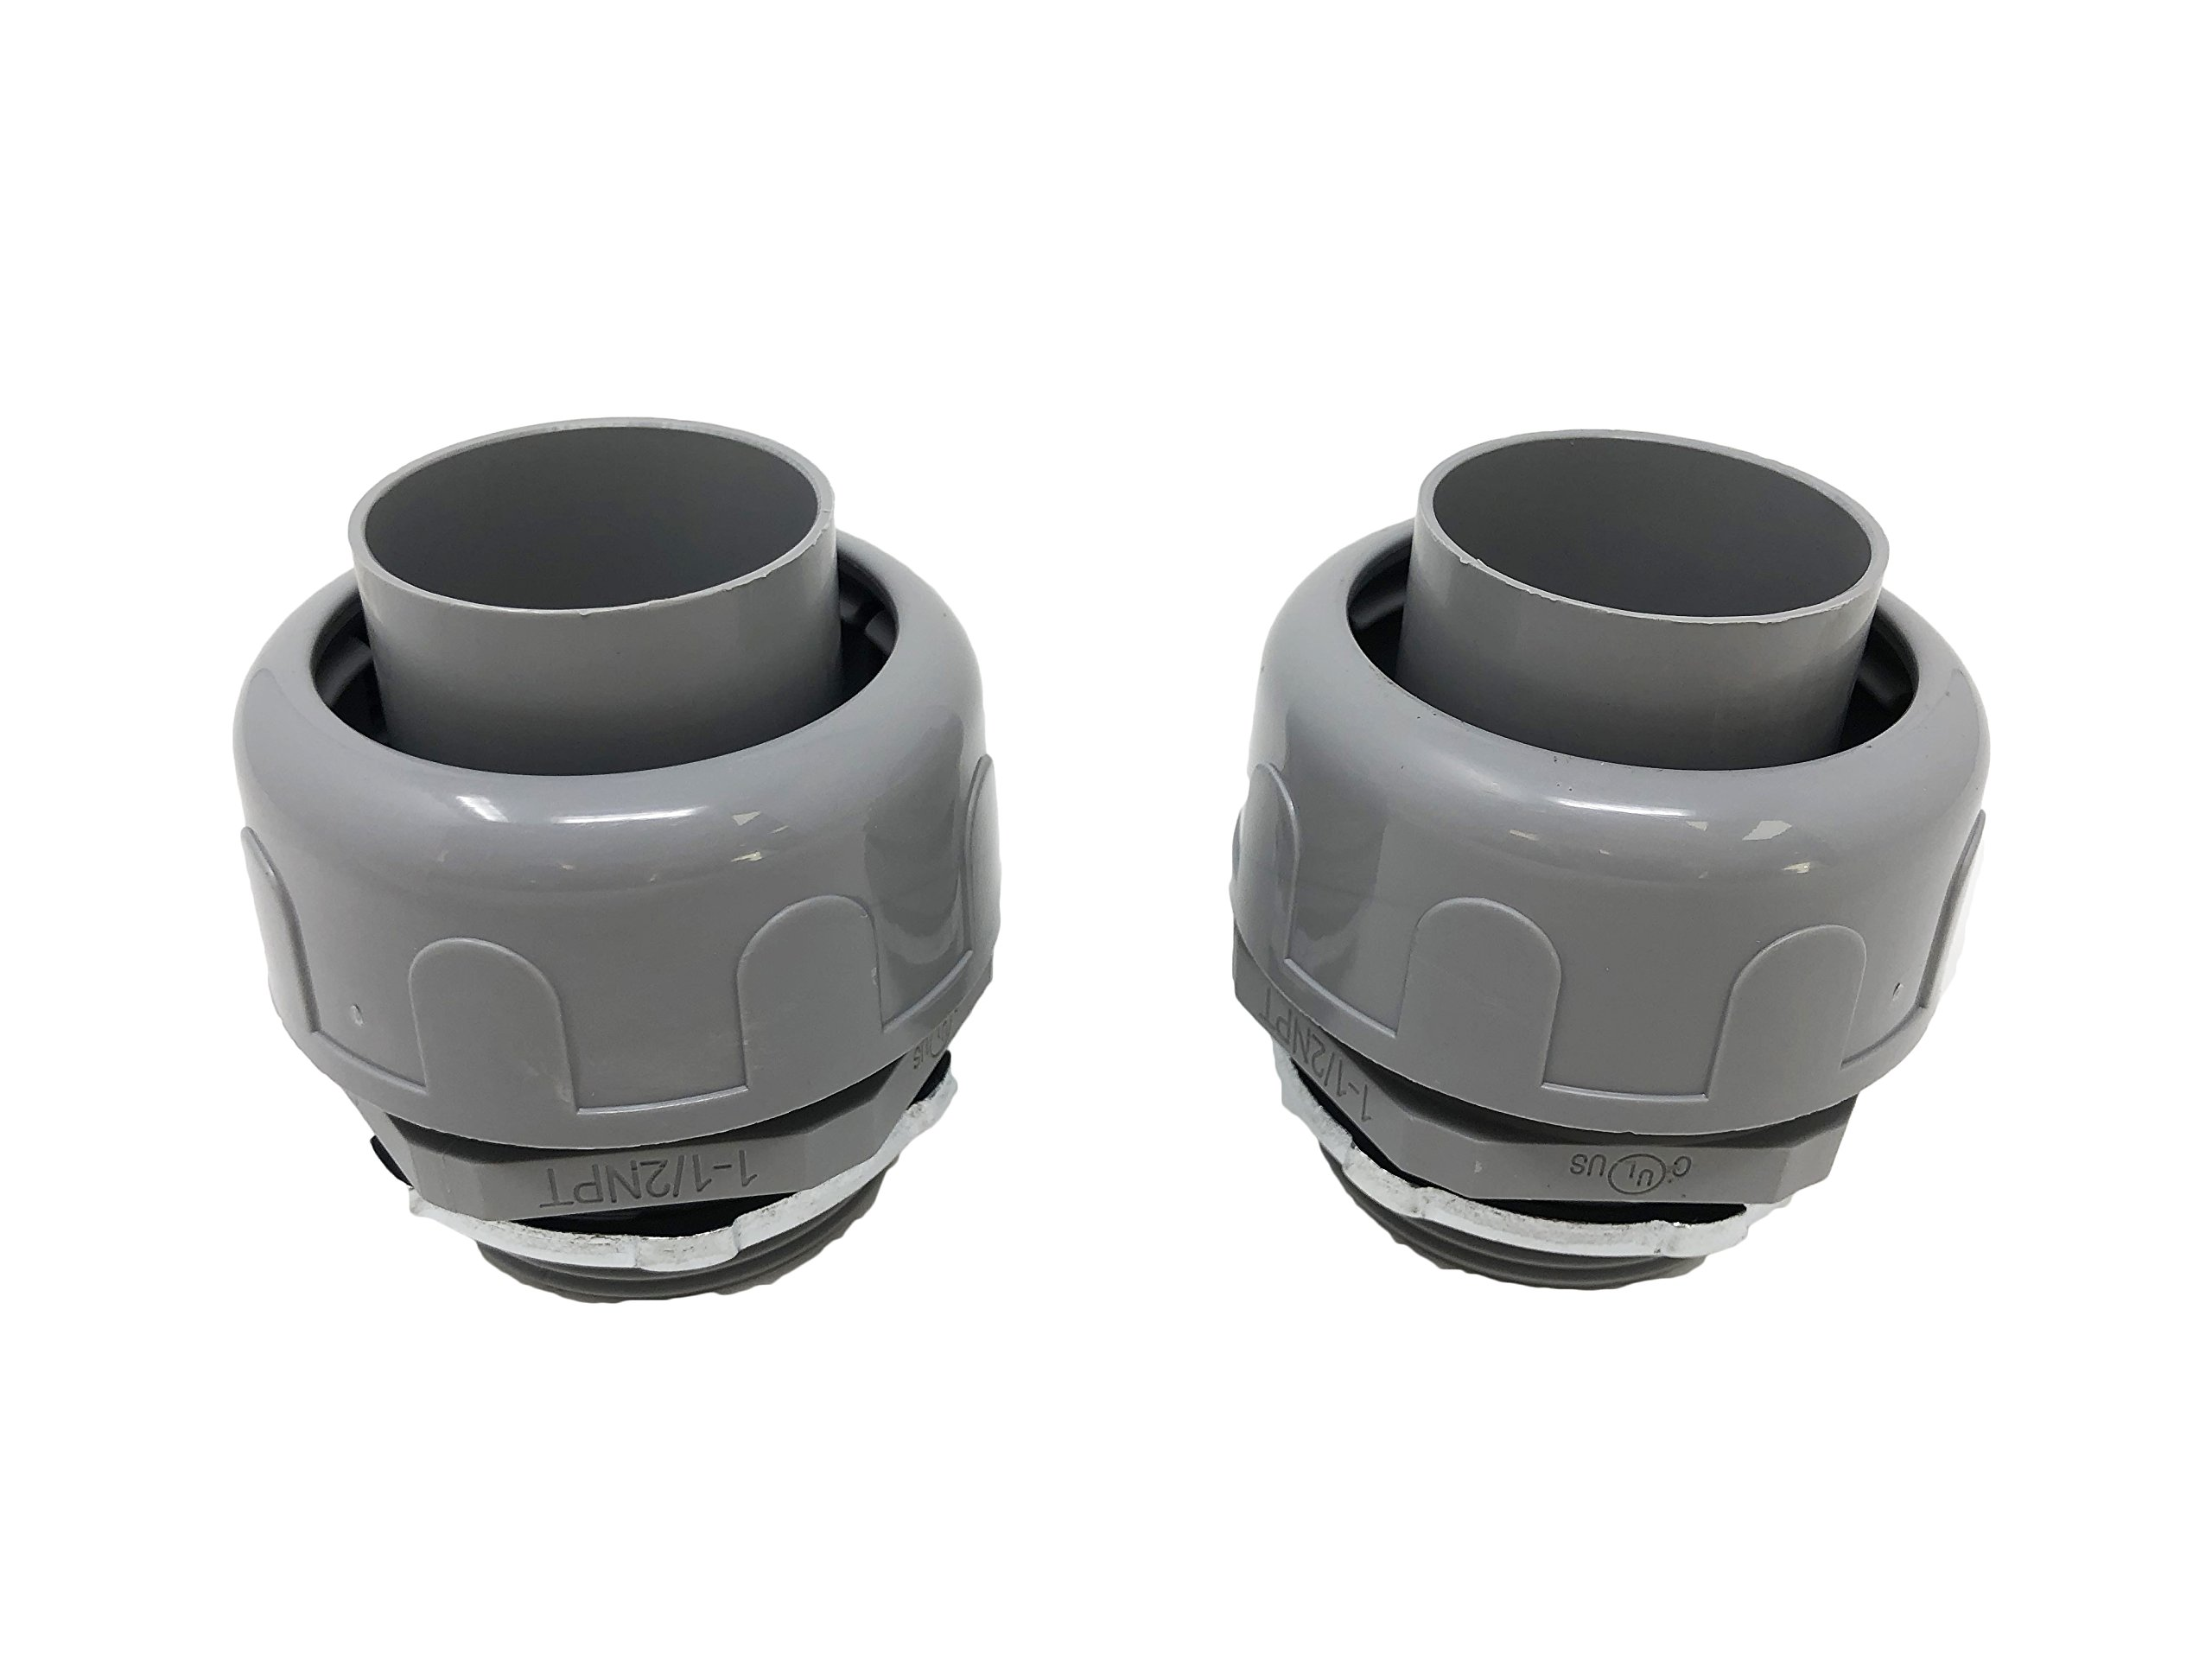 Sealproof 1-1/2-Inch Non-metallic Liquid Tight Straight Electrical Conduit Connector Fitting, UL Listed, 1-1/2'' Dia, 2-Pack